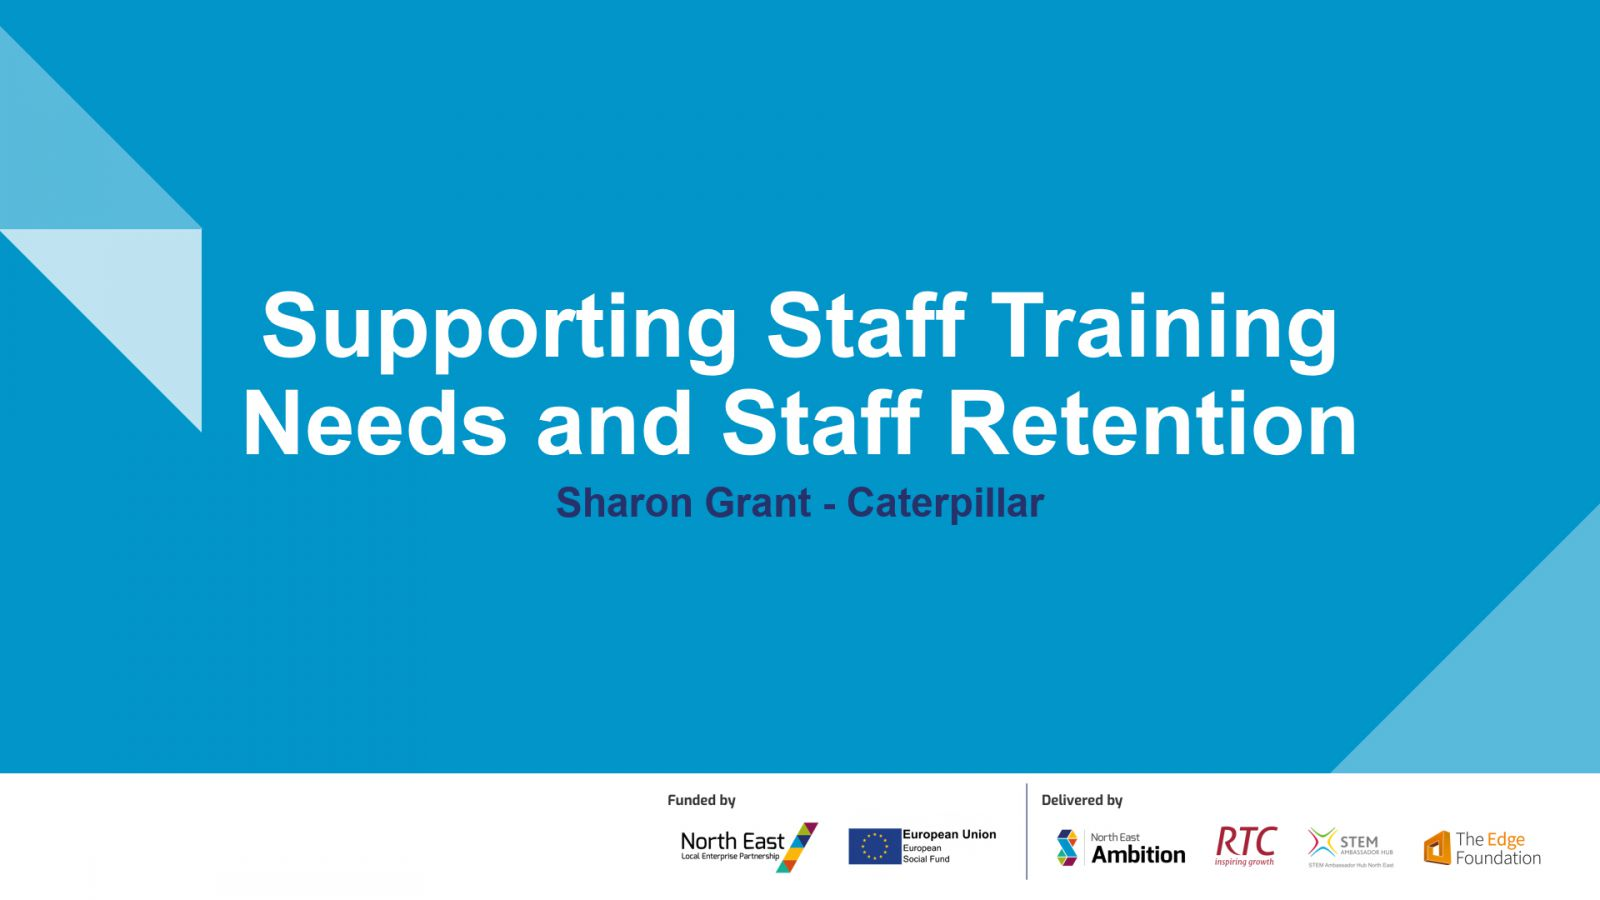 Train and Retain your Staff - Sharon Grant - Caterpillar